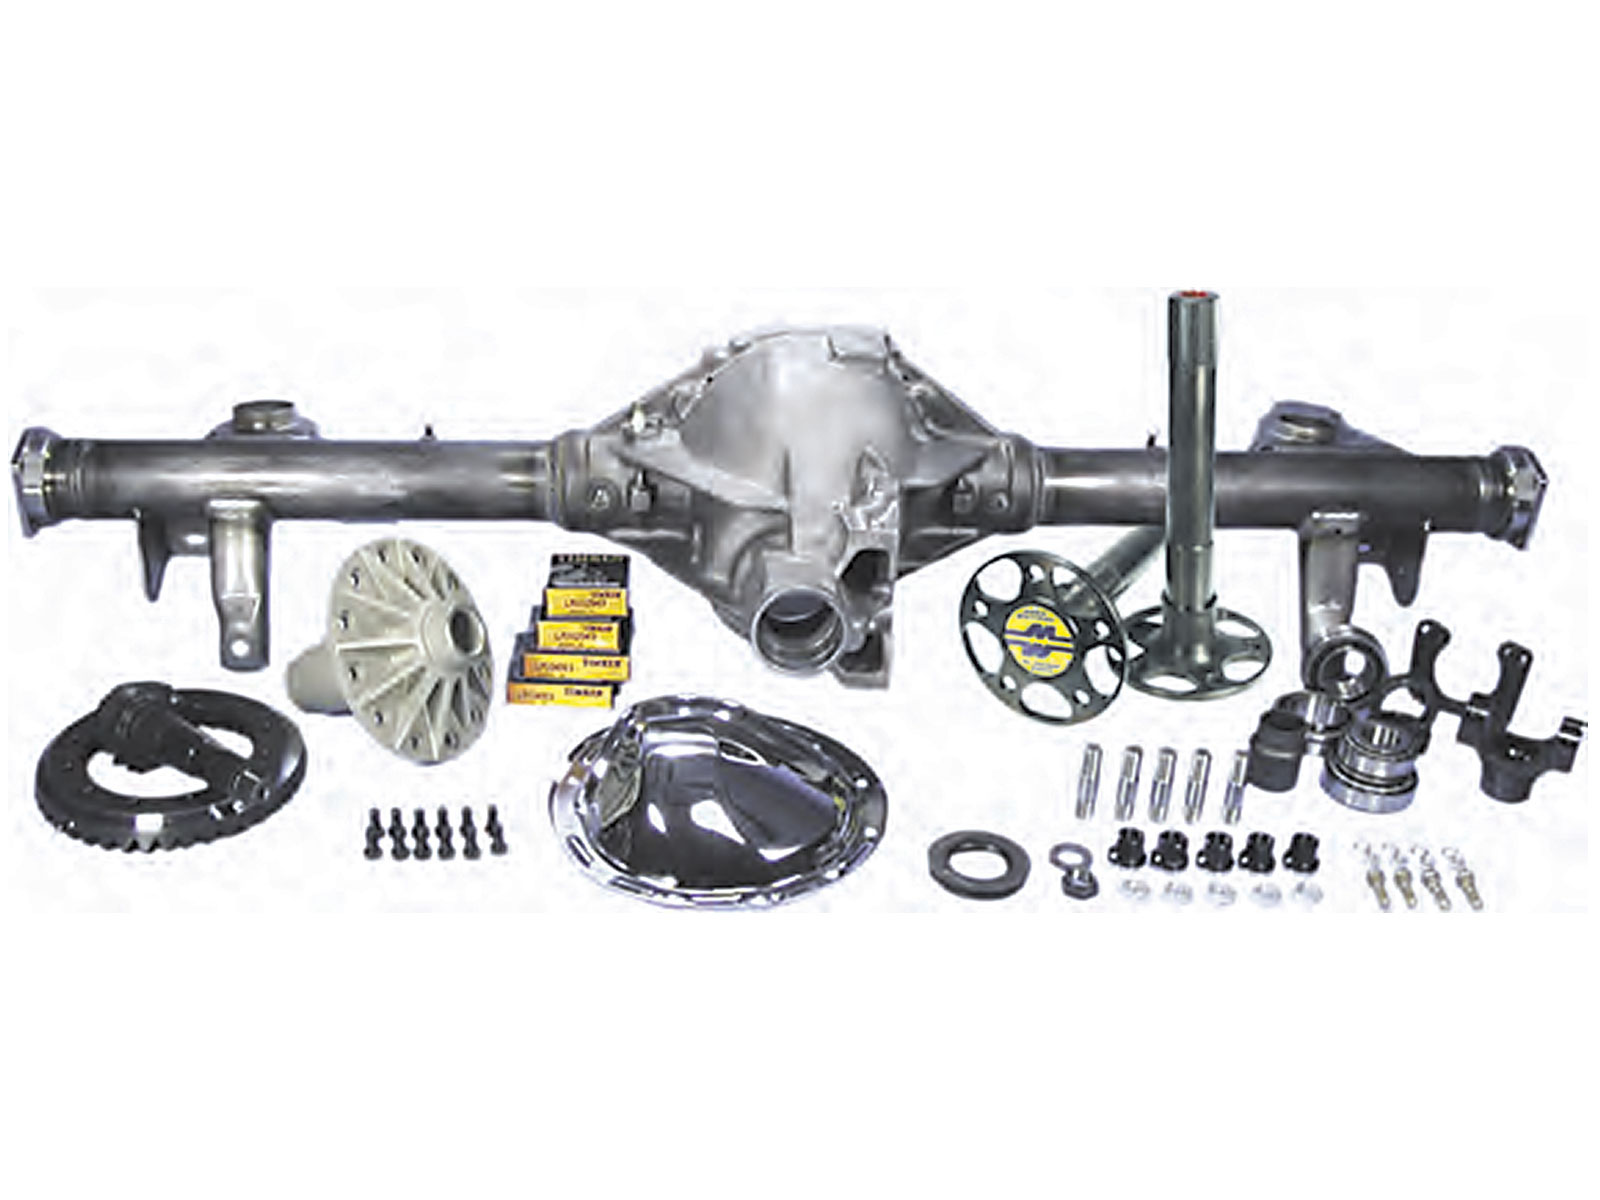 hight resolution of 2005 club car front end parts diagram images gallery